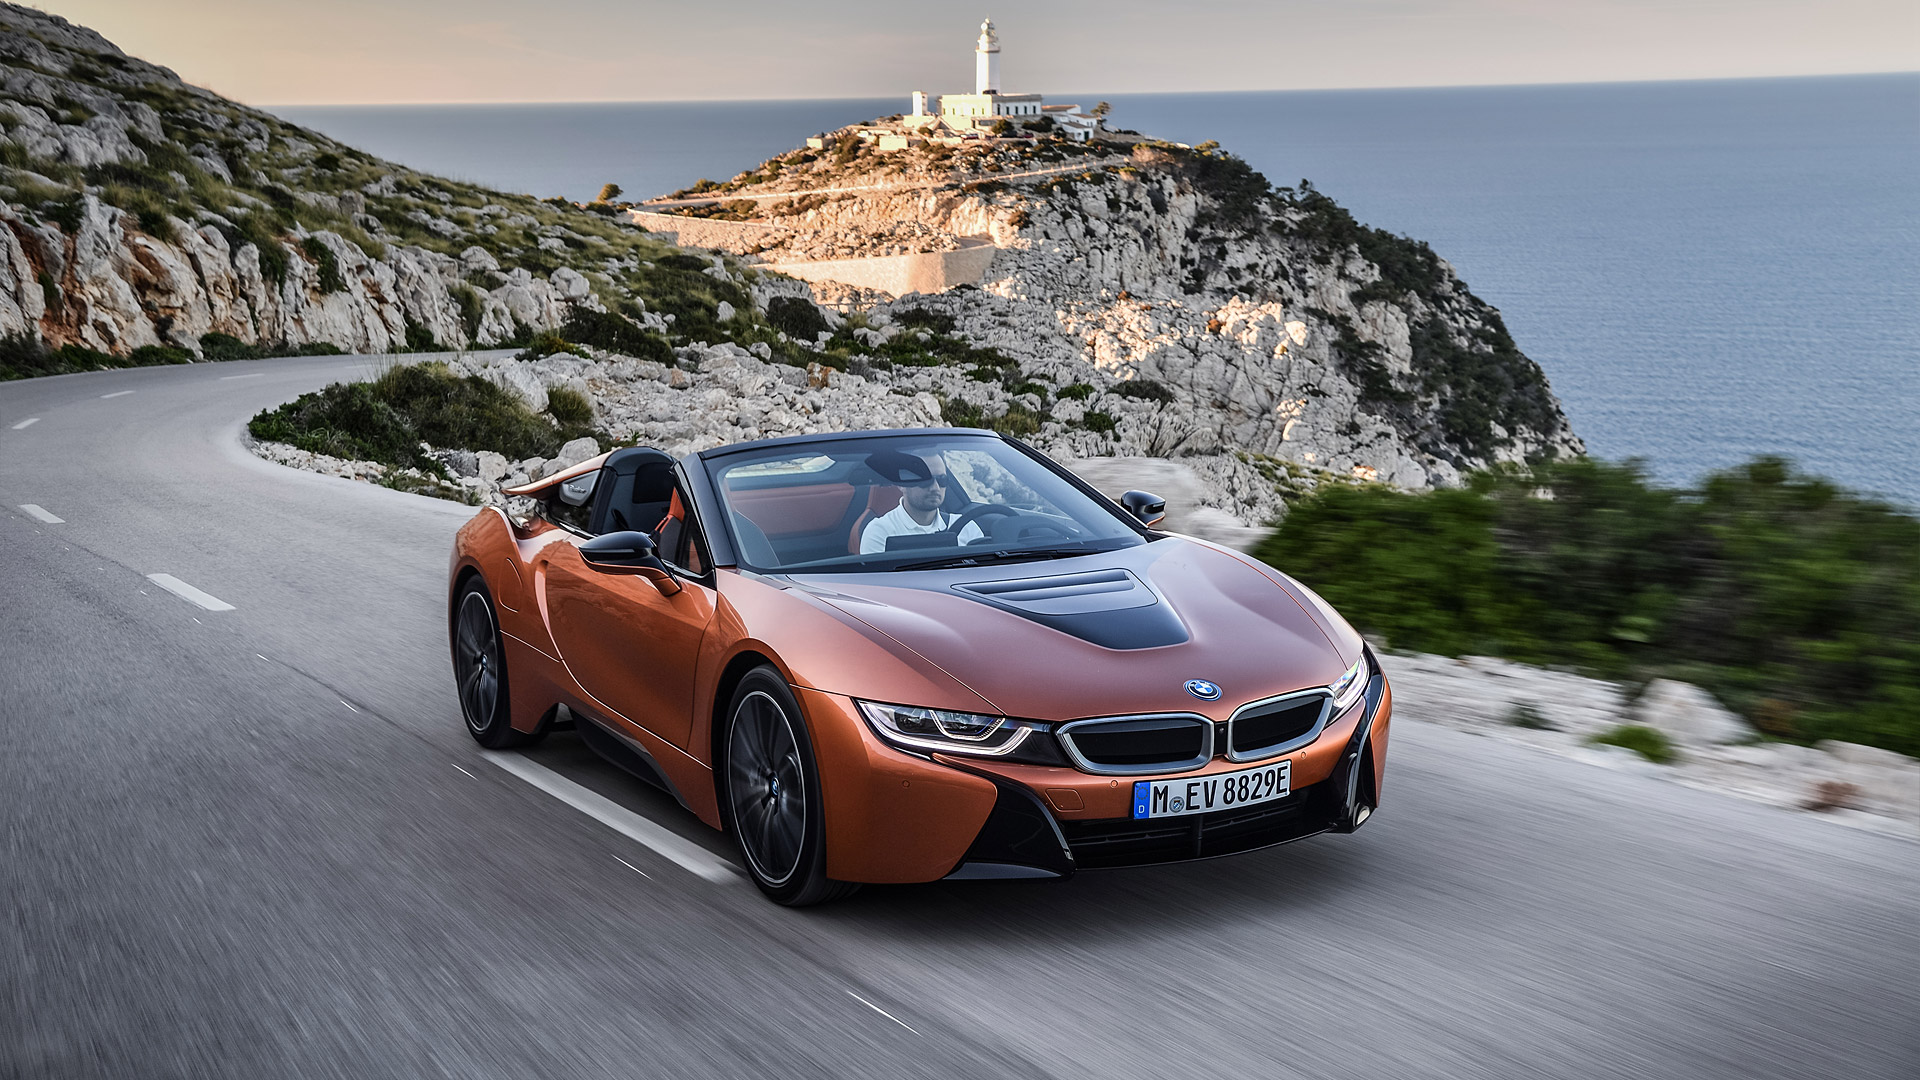 Bmw I8 1920x1080 Download Hd Wallpaper Wallpapertip